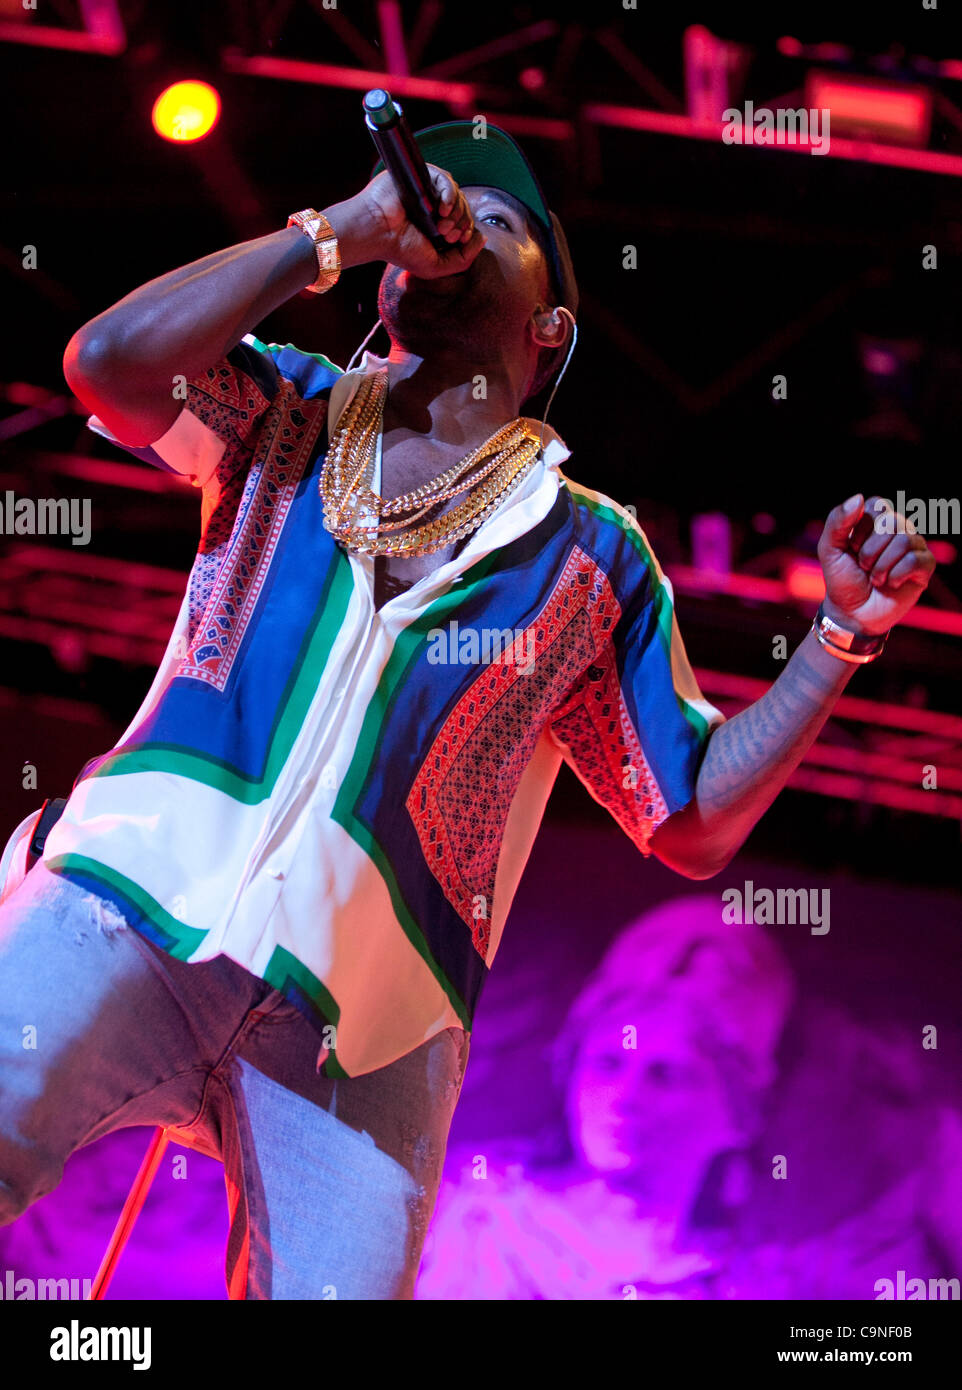 Kanye West performing at the Big Day Out, Melbourne, January 30, 2012. - Stock Image